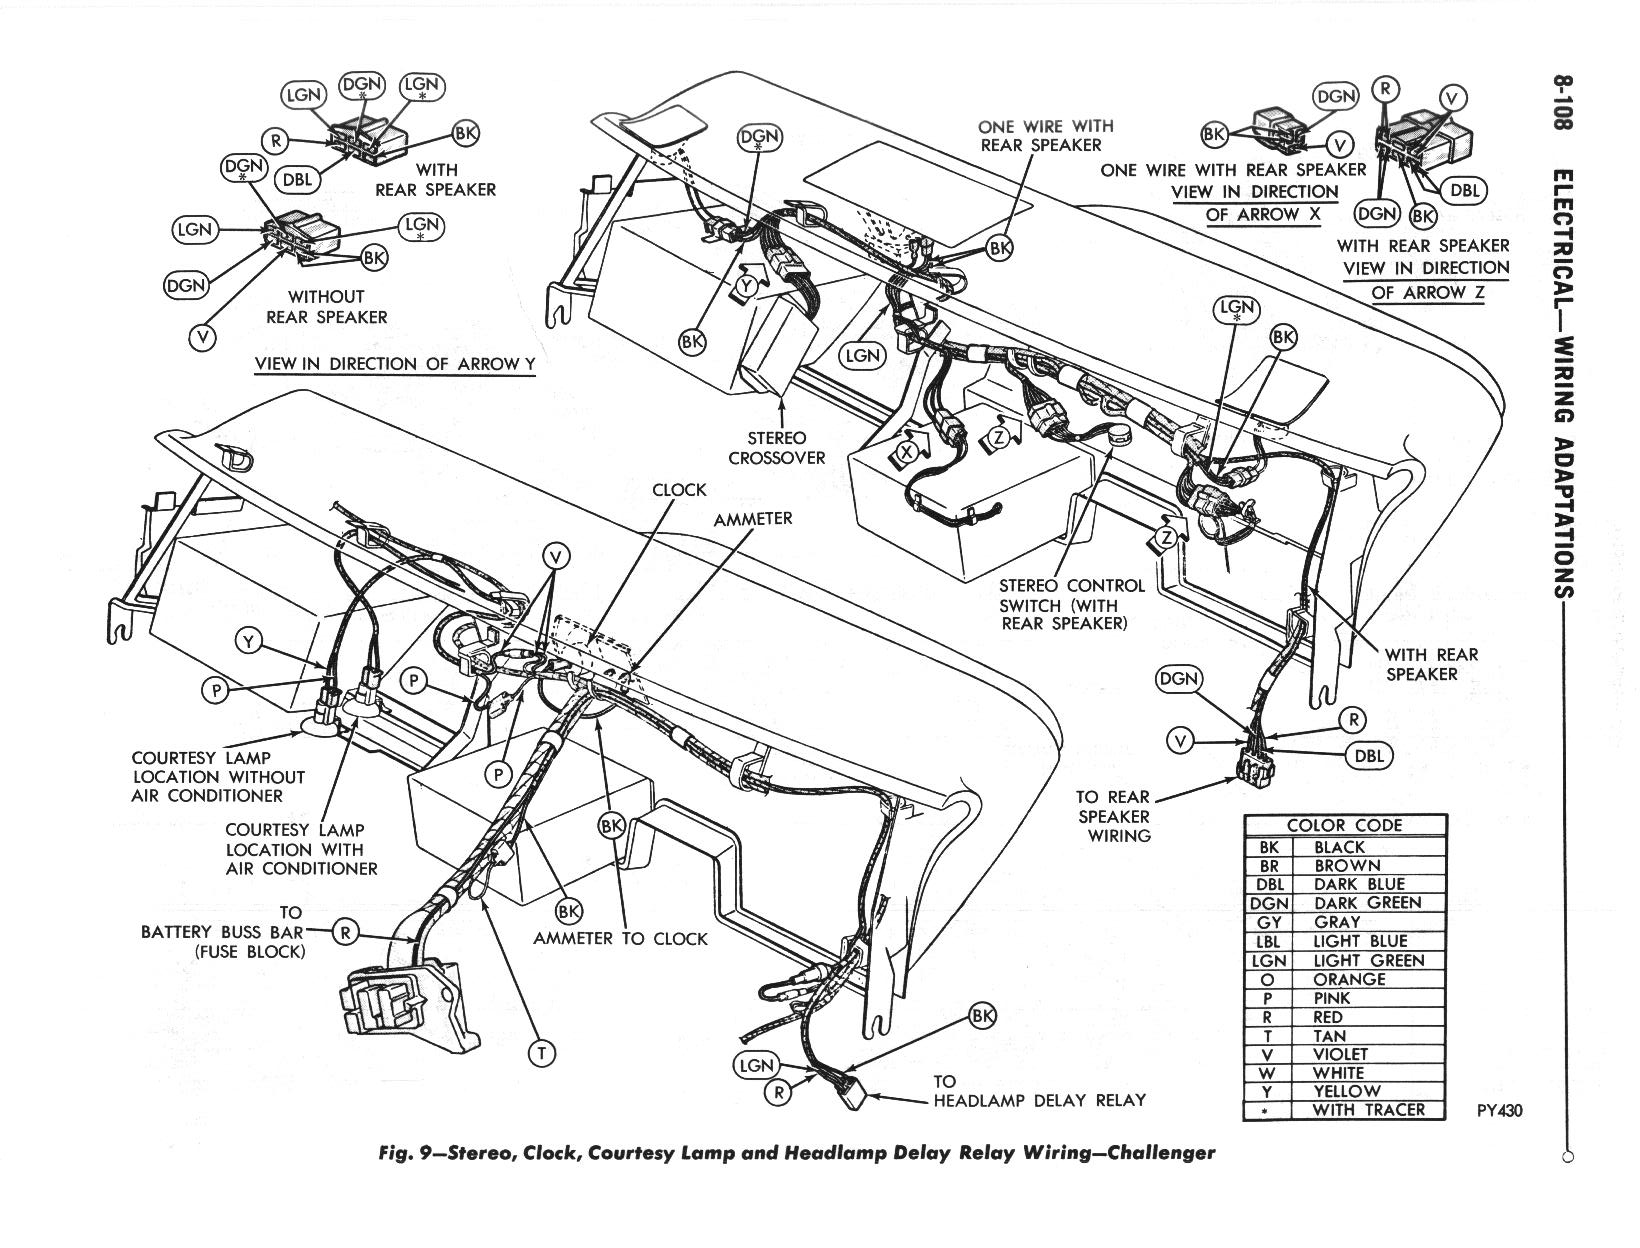 hight resolution of 1640x1248 1970 challenger wiring diagrams the dodge challenger message board